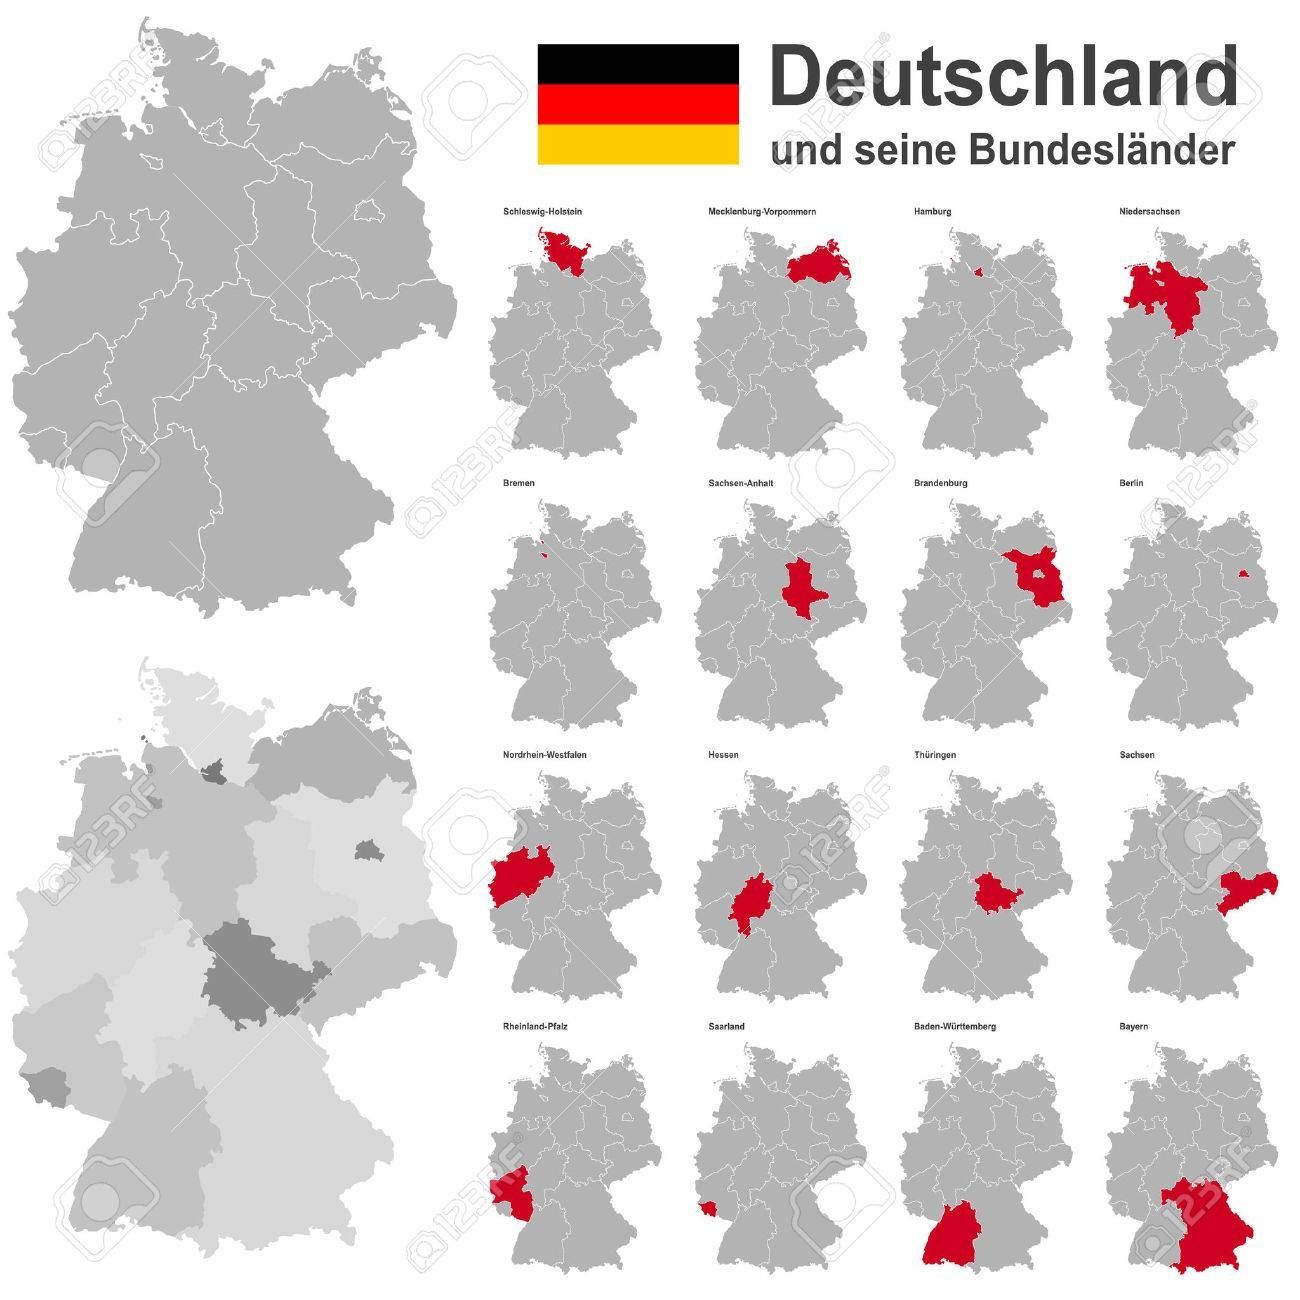 European Country Germany And The Federal States